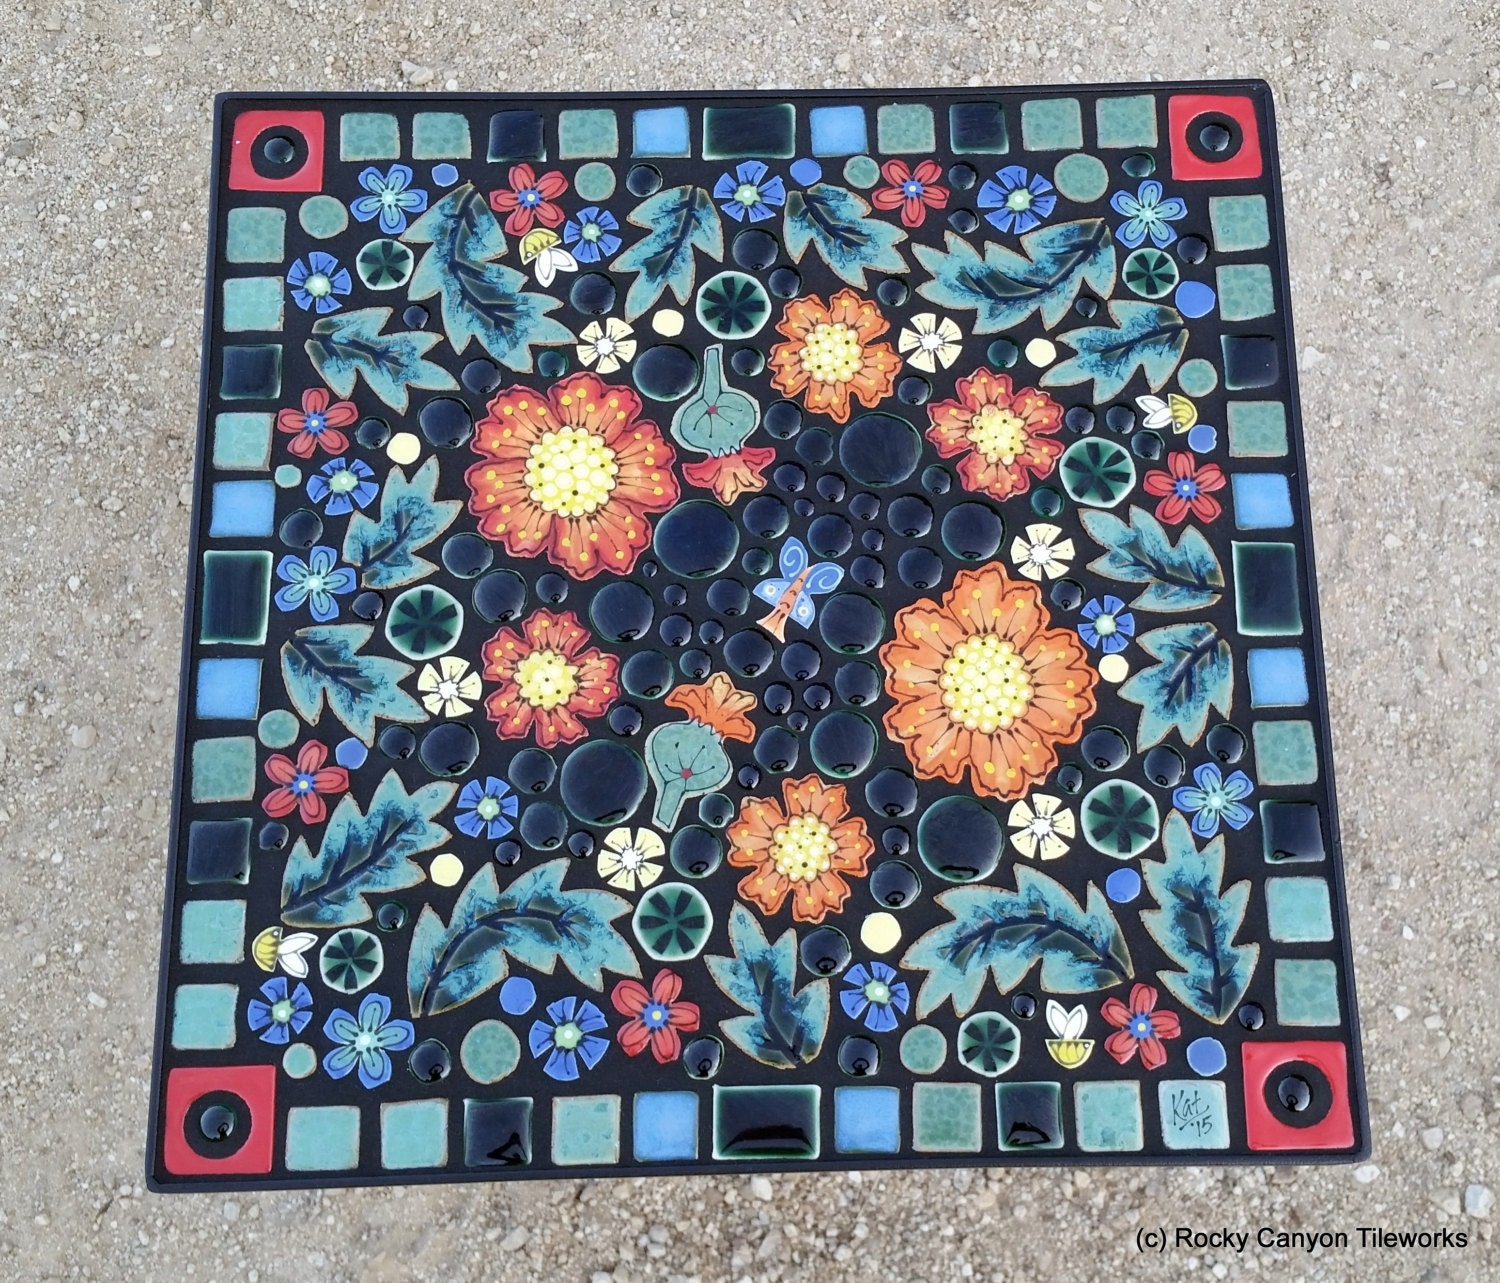 16 Square mosaic garden art tile table. Handmade